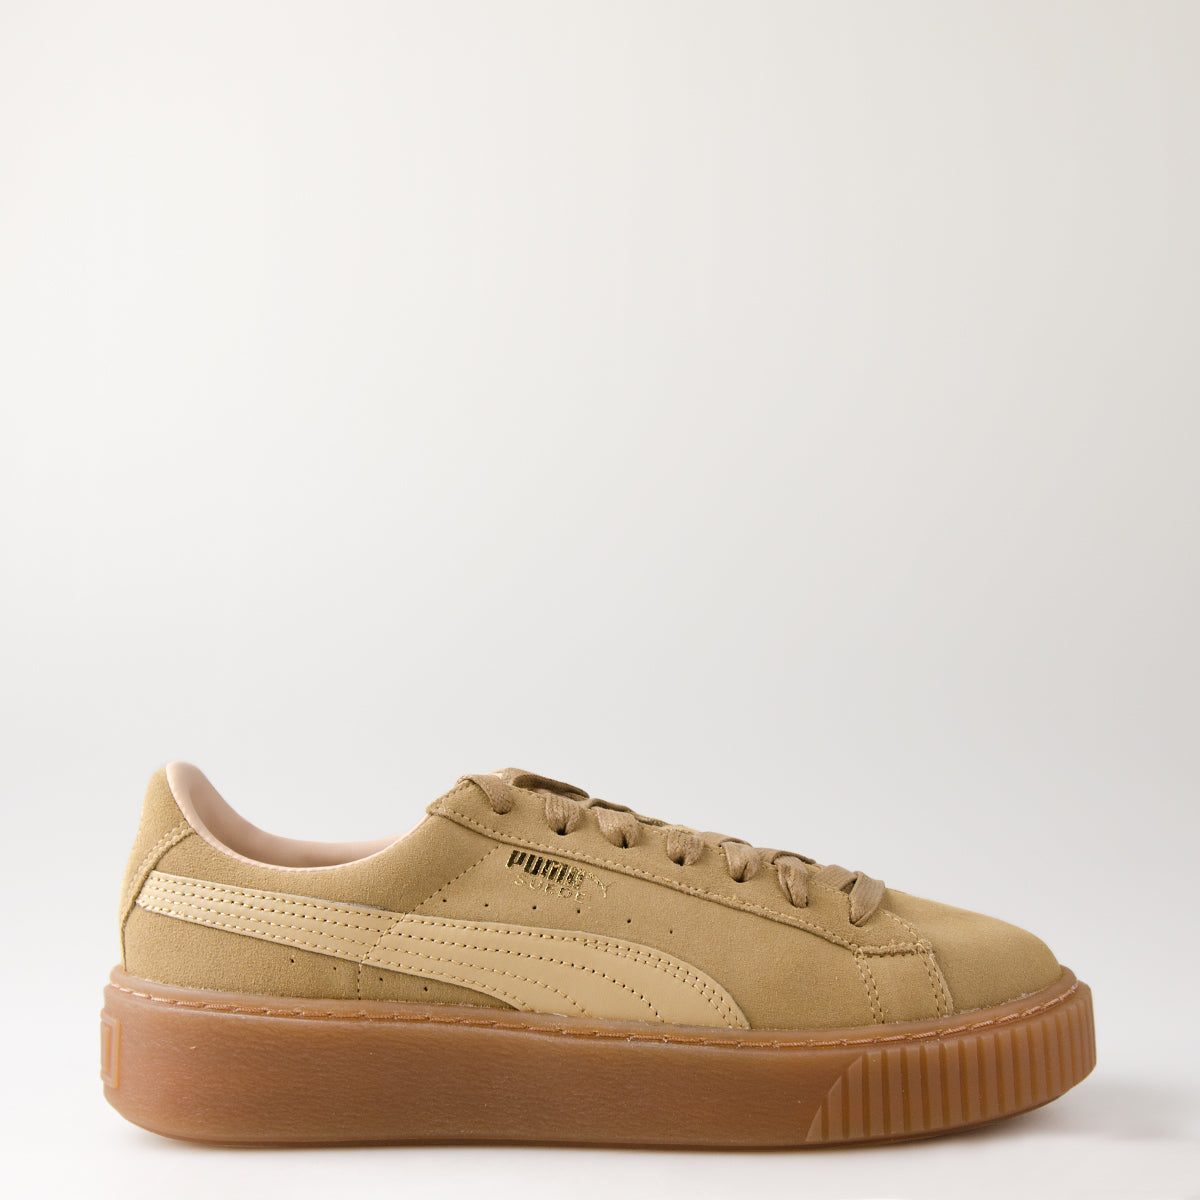 630ab1d7035b Women s PUMA Suede Platform Core Sneakers Oatmeal Whisper White.  50.00  Regular price  100.00